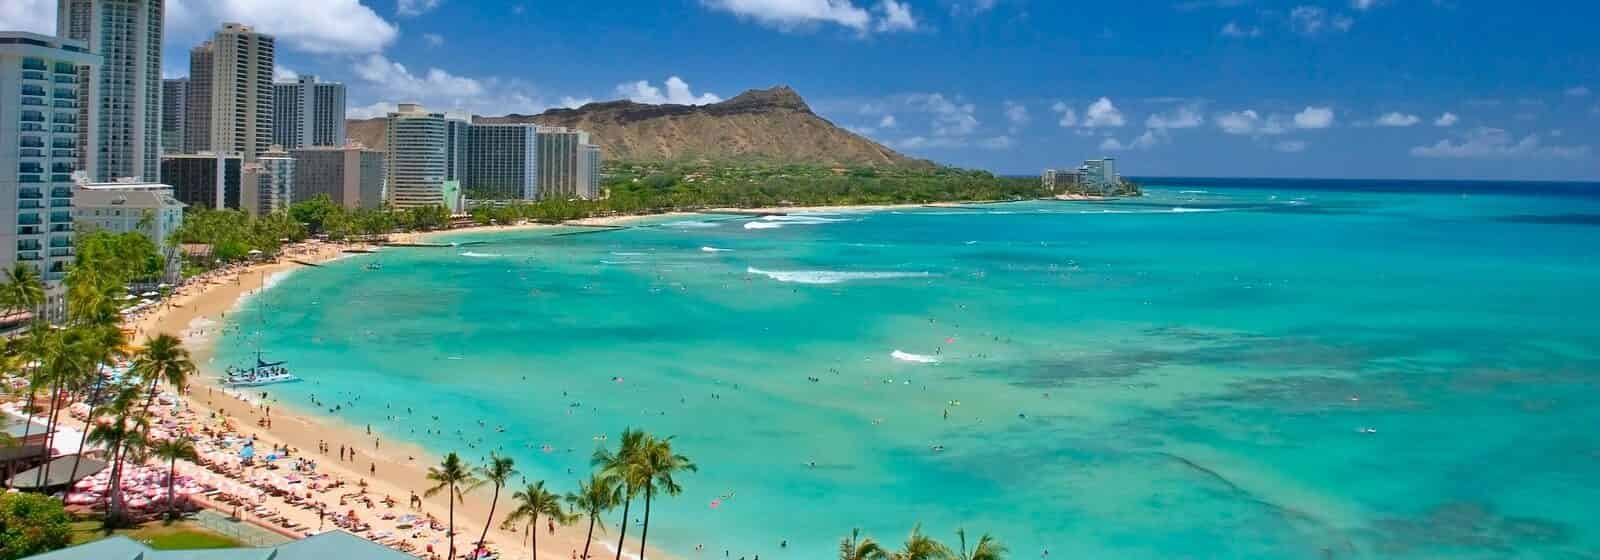 banner image bird eye view of a Waikiki Beach